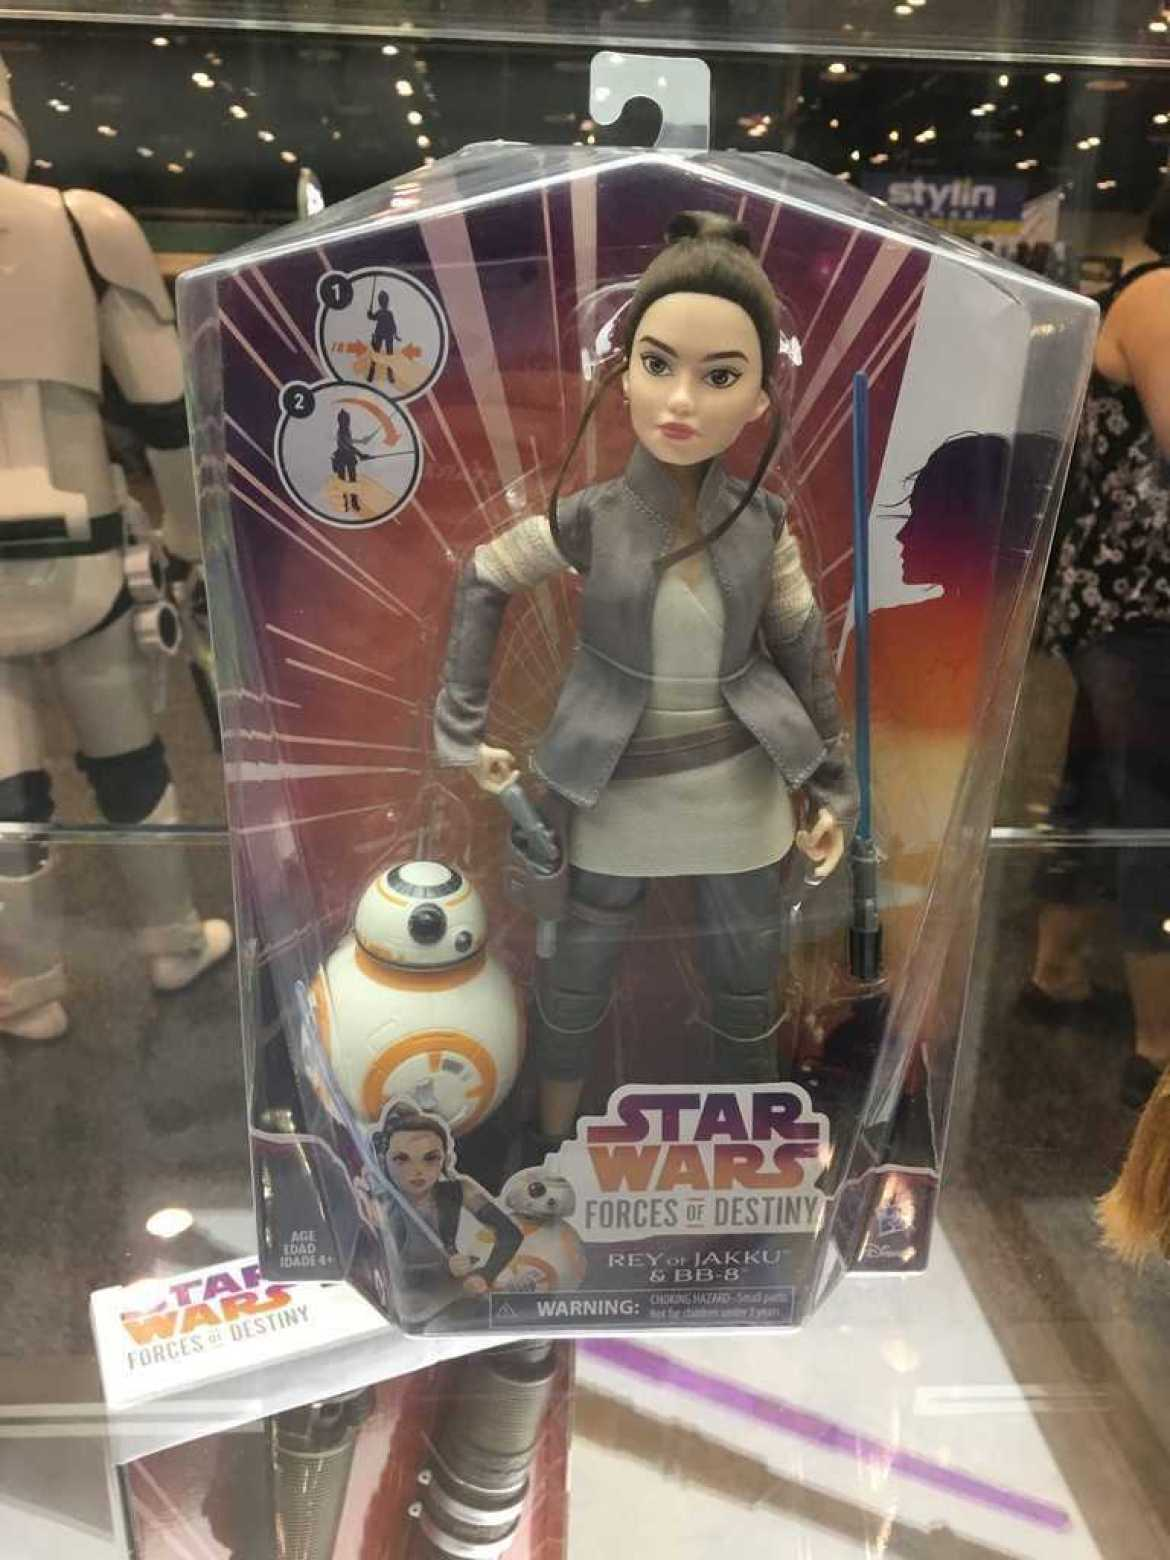 img 1228 - Star Wars: Forces of Destiny action doll gallery